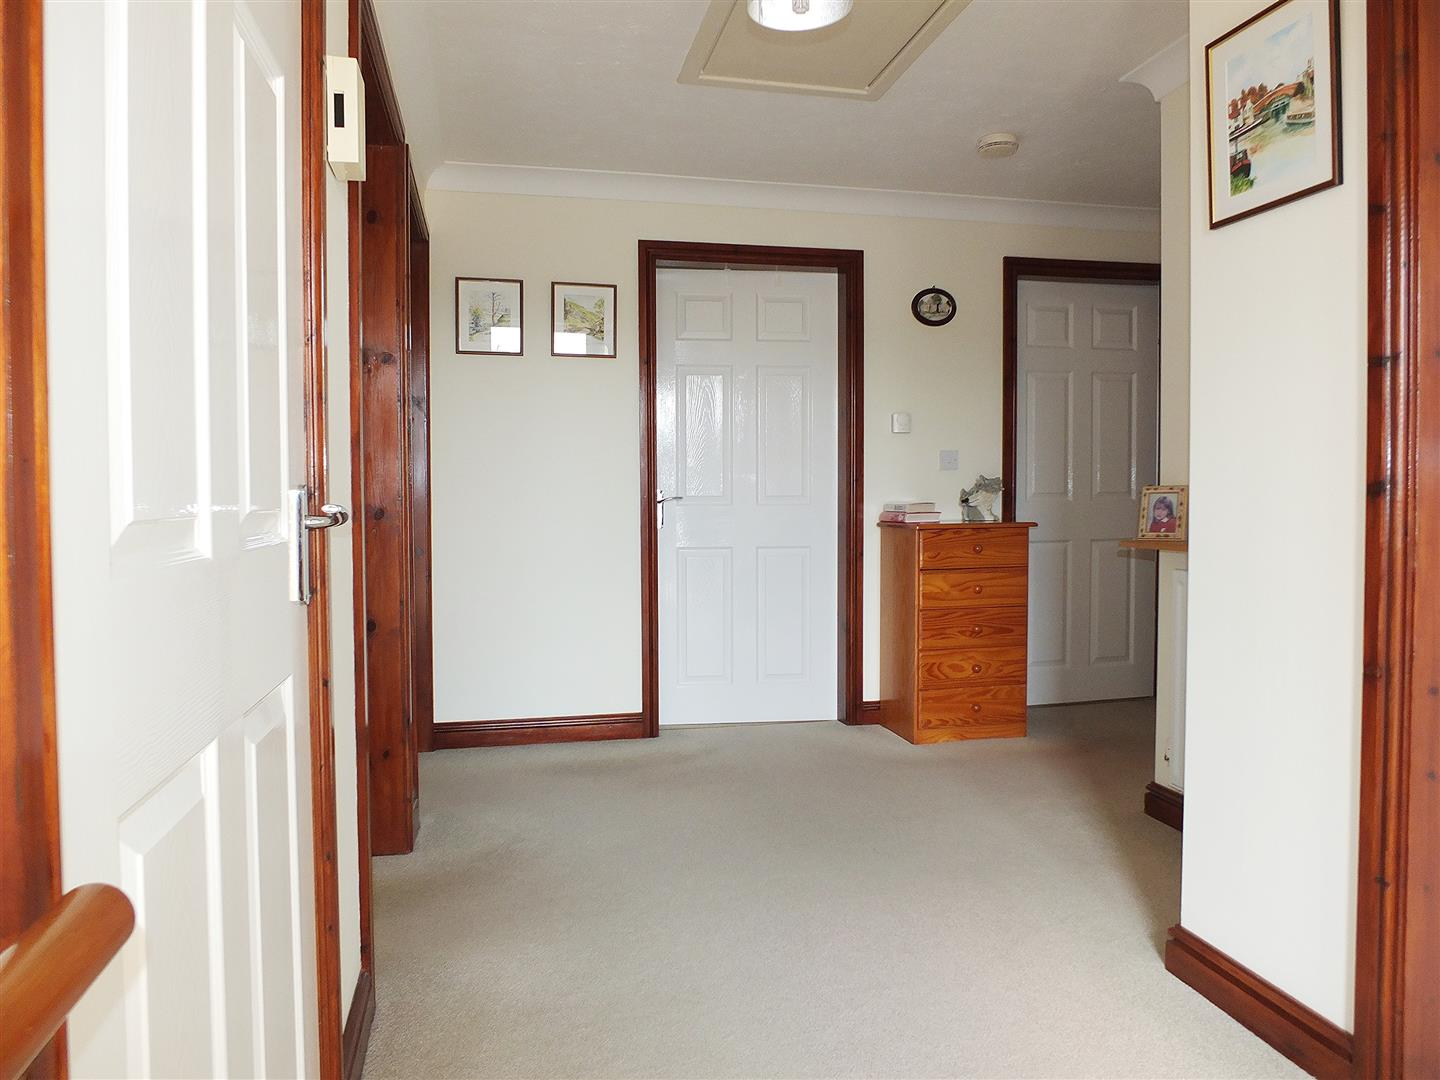 3 bed detached bungalow for sale in Long Sutton Spalding, PE12 9FT 13